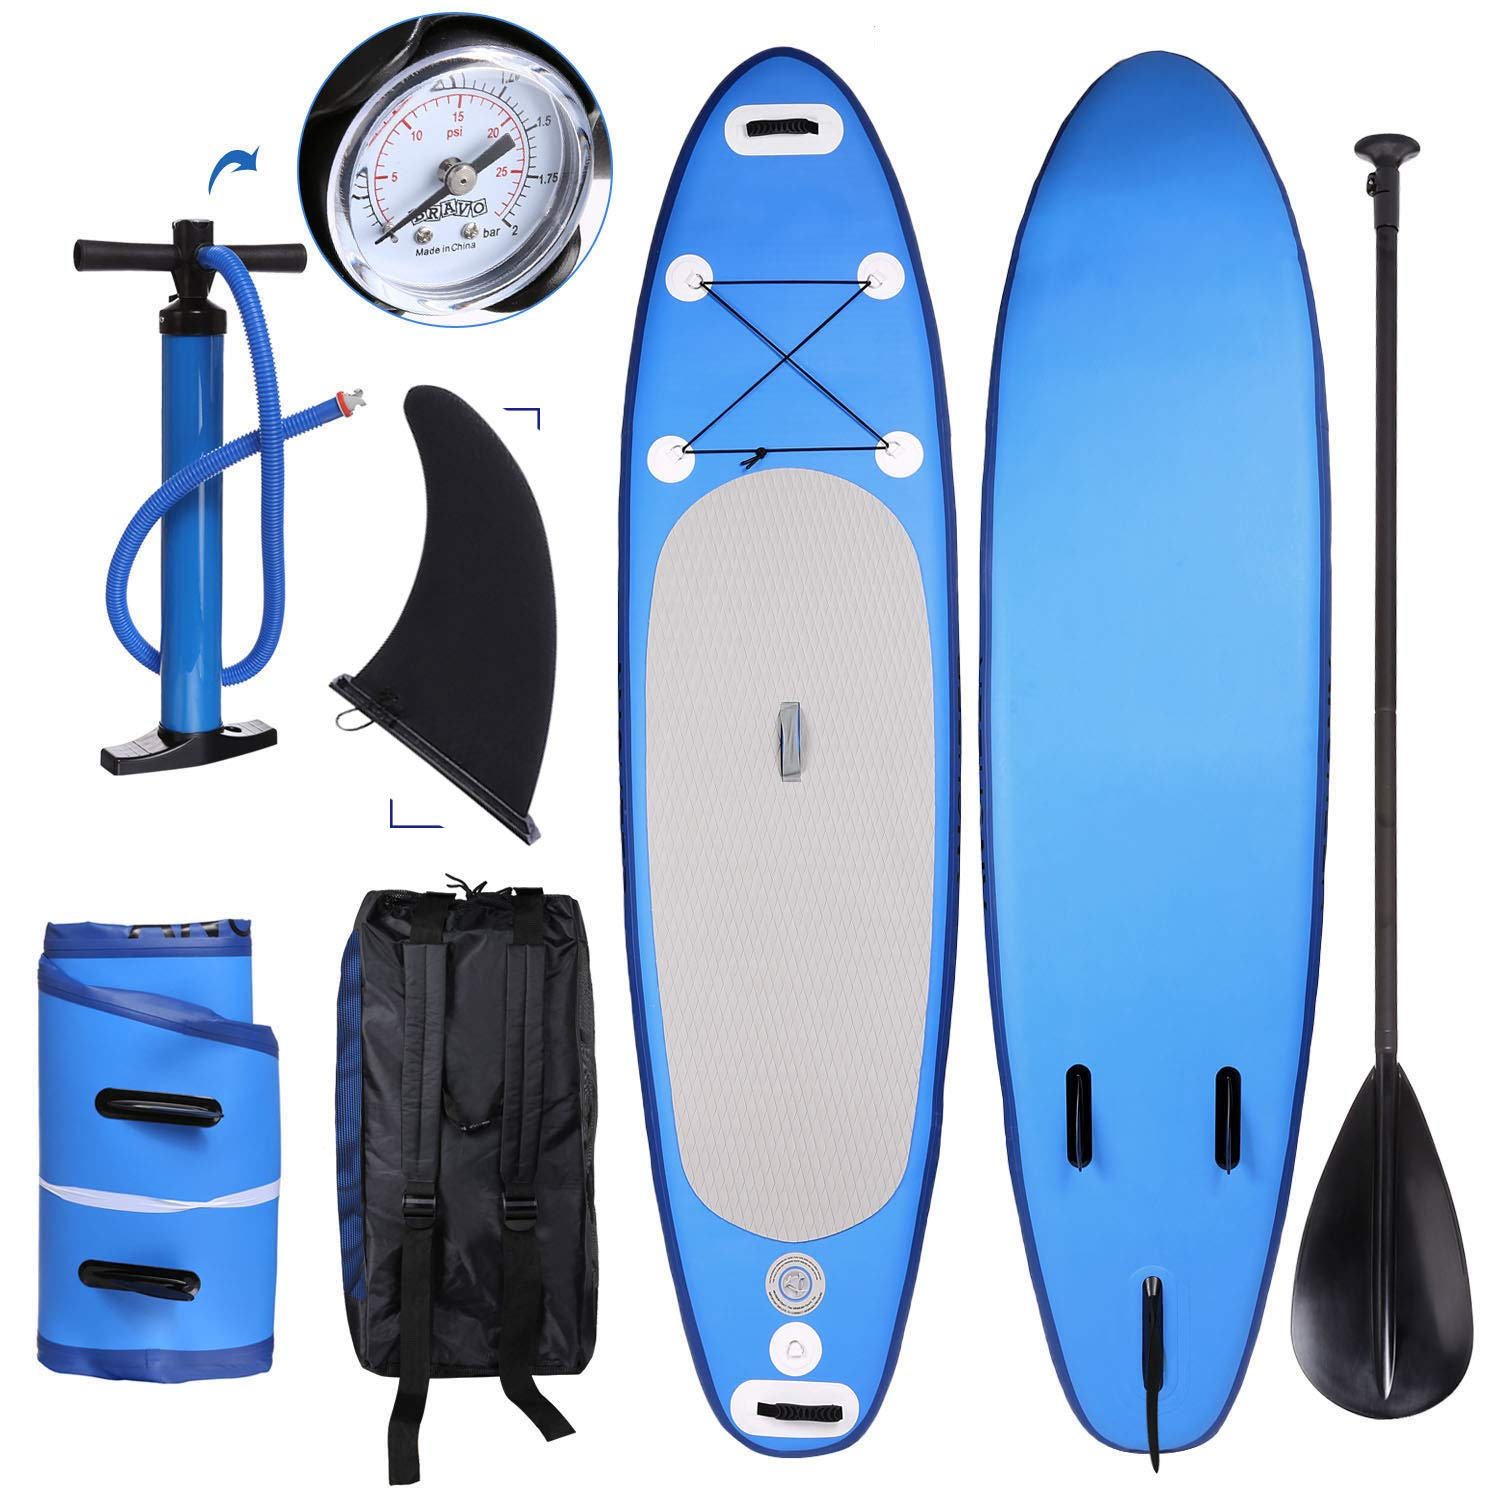 38666f10b48e Inflatable Stand Up Paddle Board Bundle ISUP Surf Board Water Skiing (6  Inches Thick, 30 inches Wide) Travel Backpack and Accessories Paddle Leash  Included